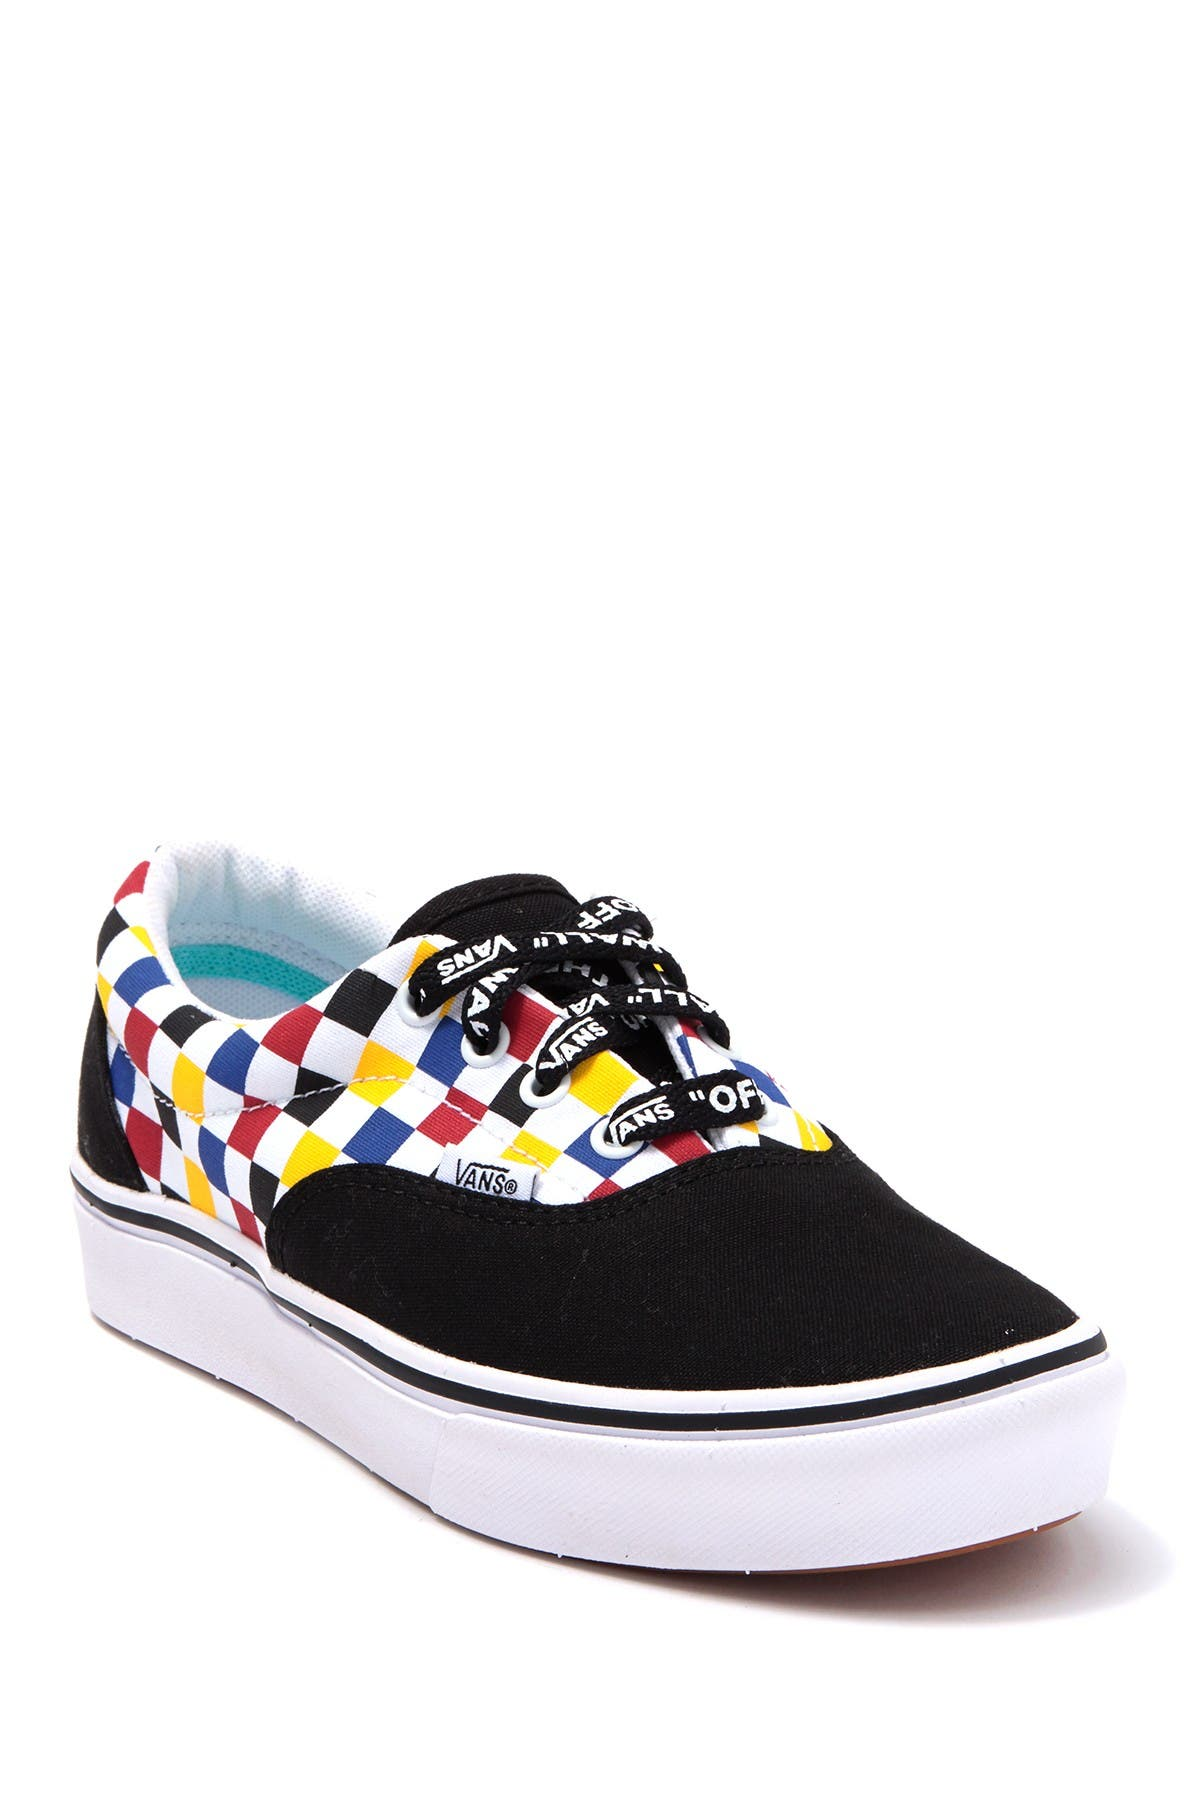 Image of VANS Checkered Comfy Cushion Authentic Sneaker